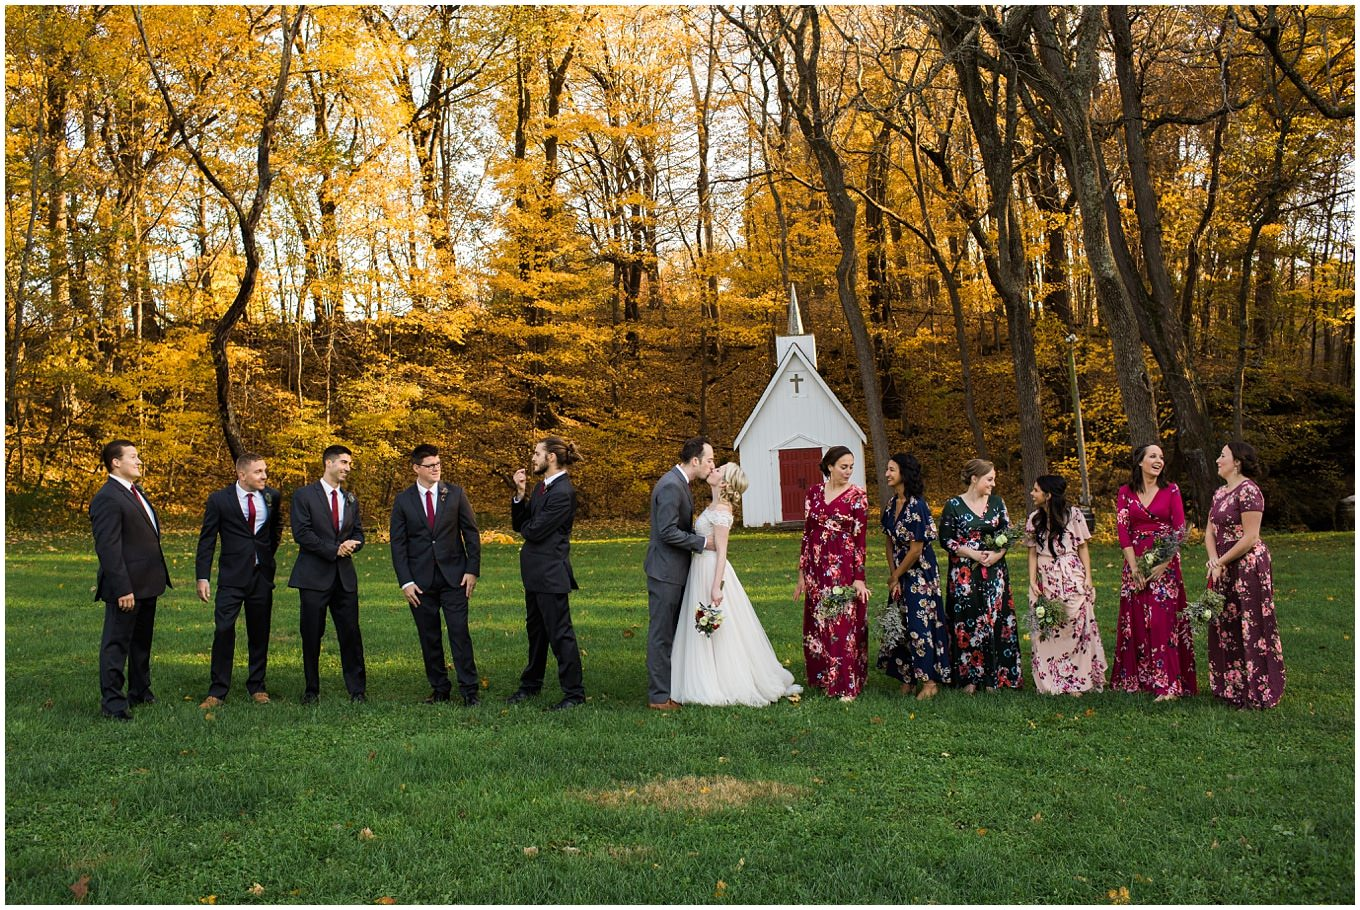 adam lowe photography, rockmill brewery, rockmill wedding, wedding outside, wedding in the woods, stylish outdoor wedding, fun, Pursuit, the black tux, tie bar, wendys bridal, essence of australia, Jane, Big Mouth Eggrolls,